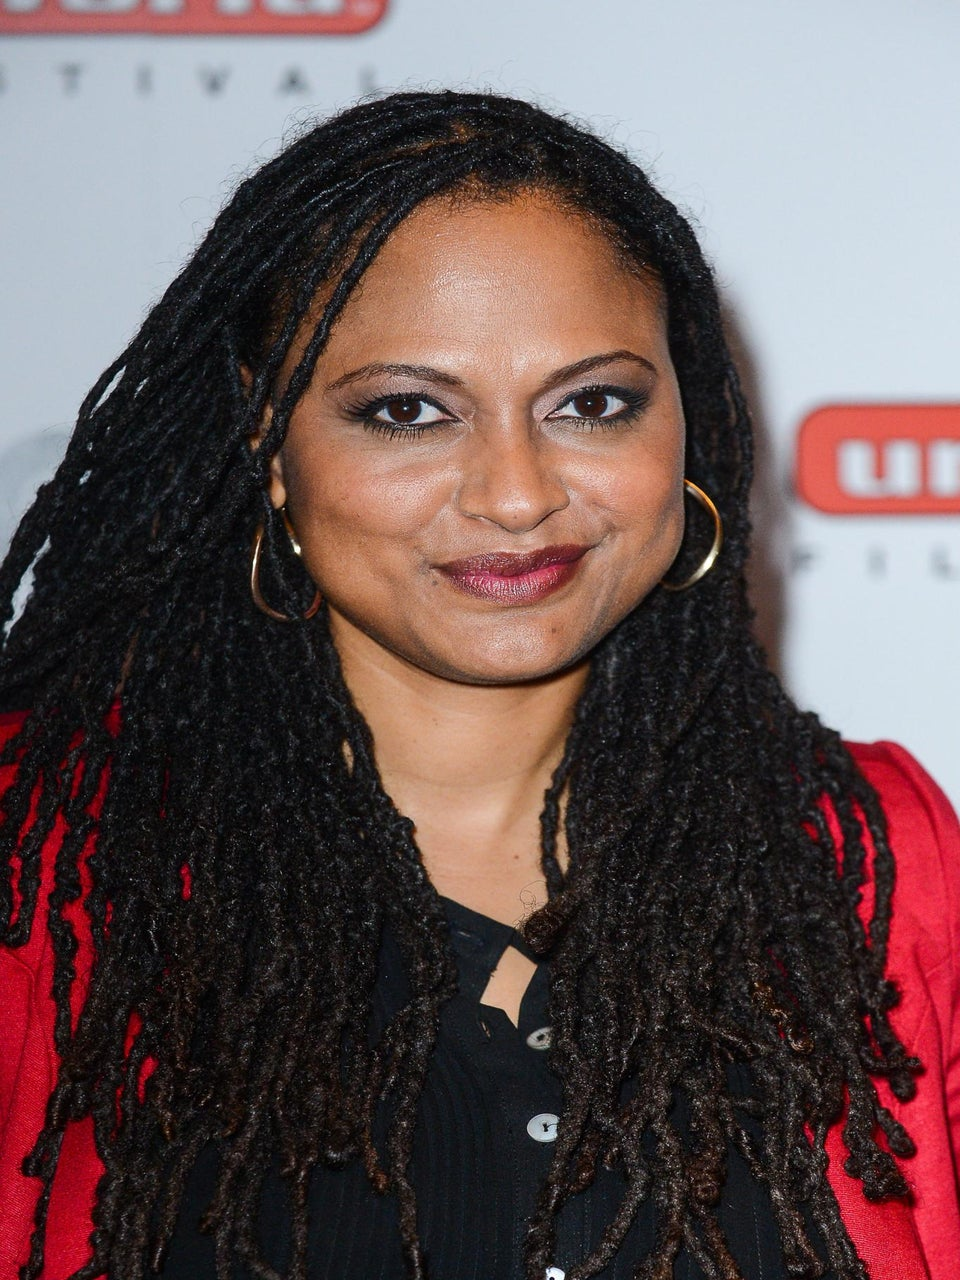 Coffee Talk: Ava DuVernay to Direct New MLK Biopic